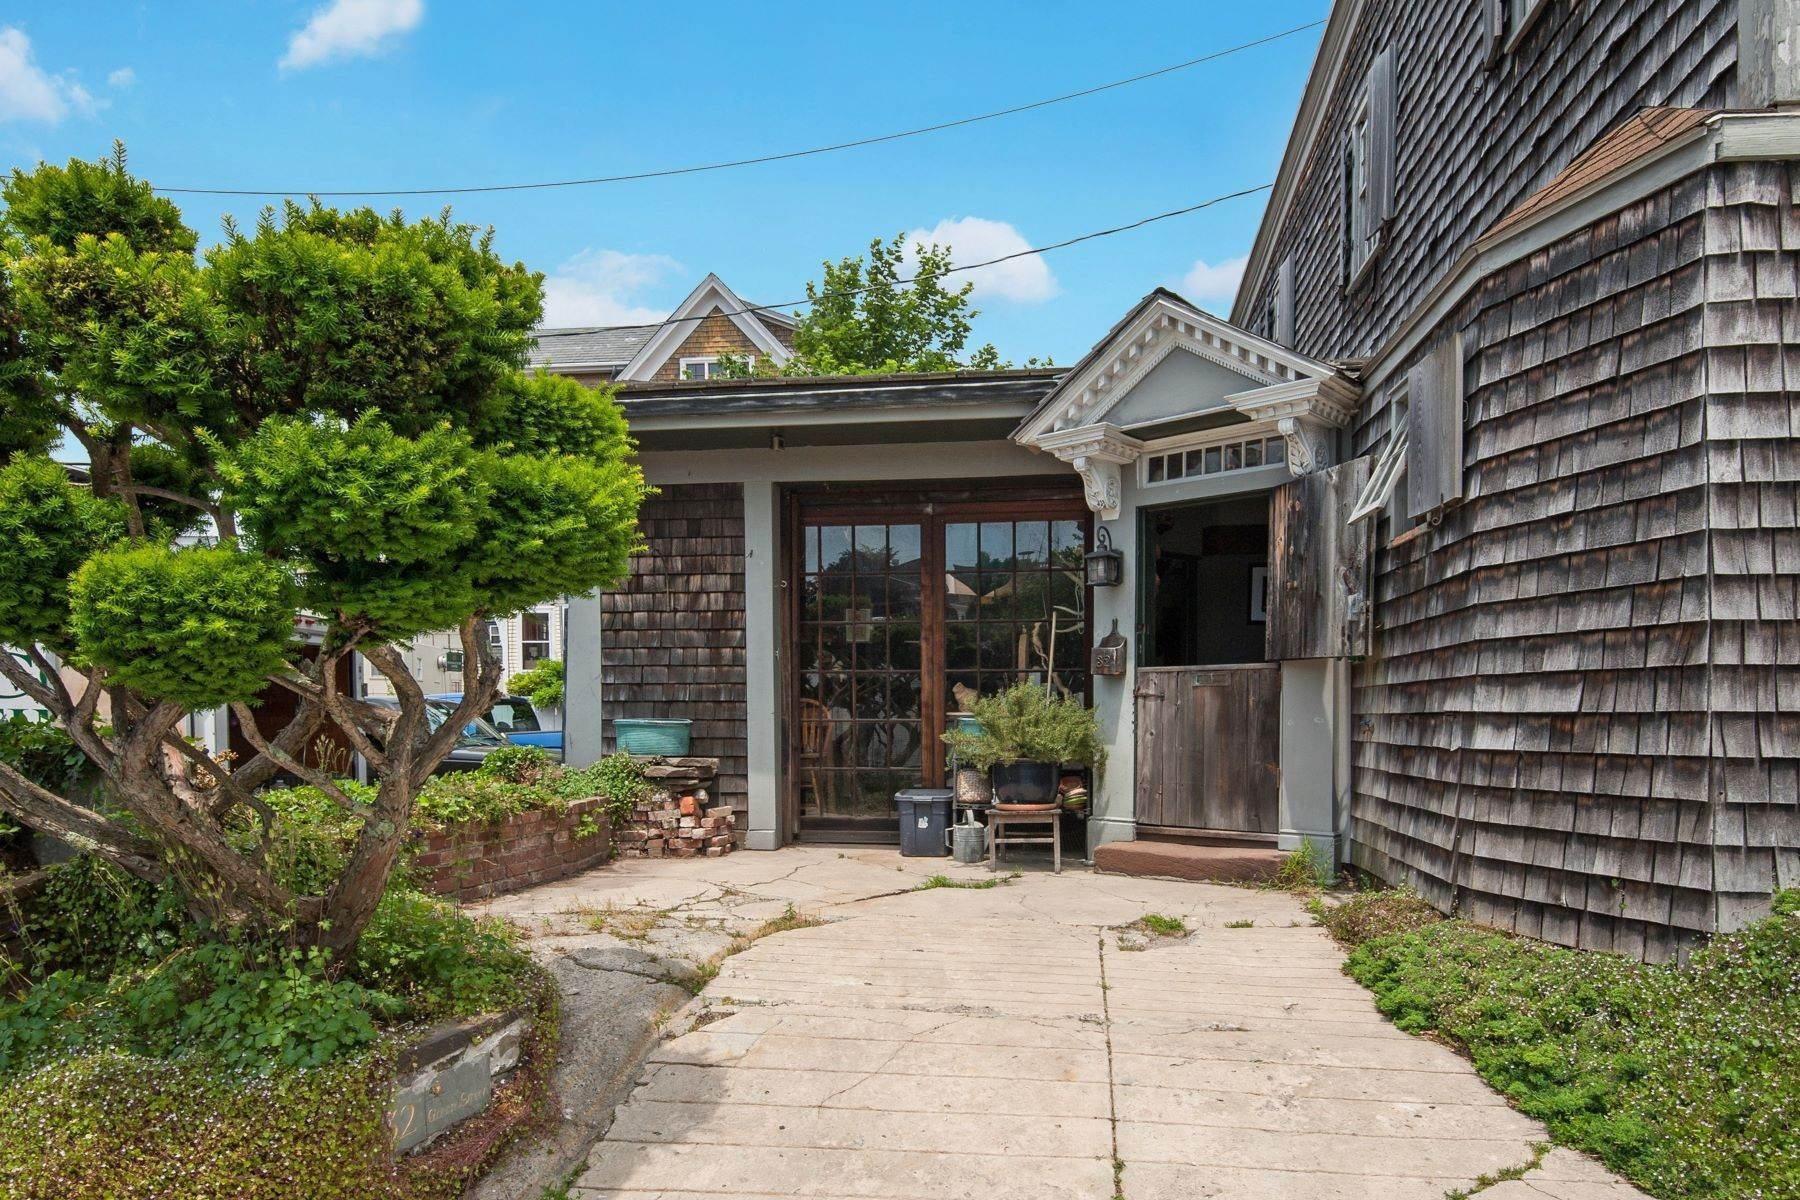 3. Property for Sale at 'Conservatory' 32 Green Street Newport, Rhode Island 02840 United States